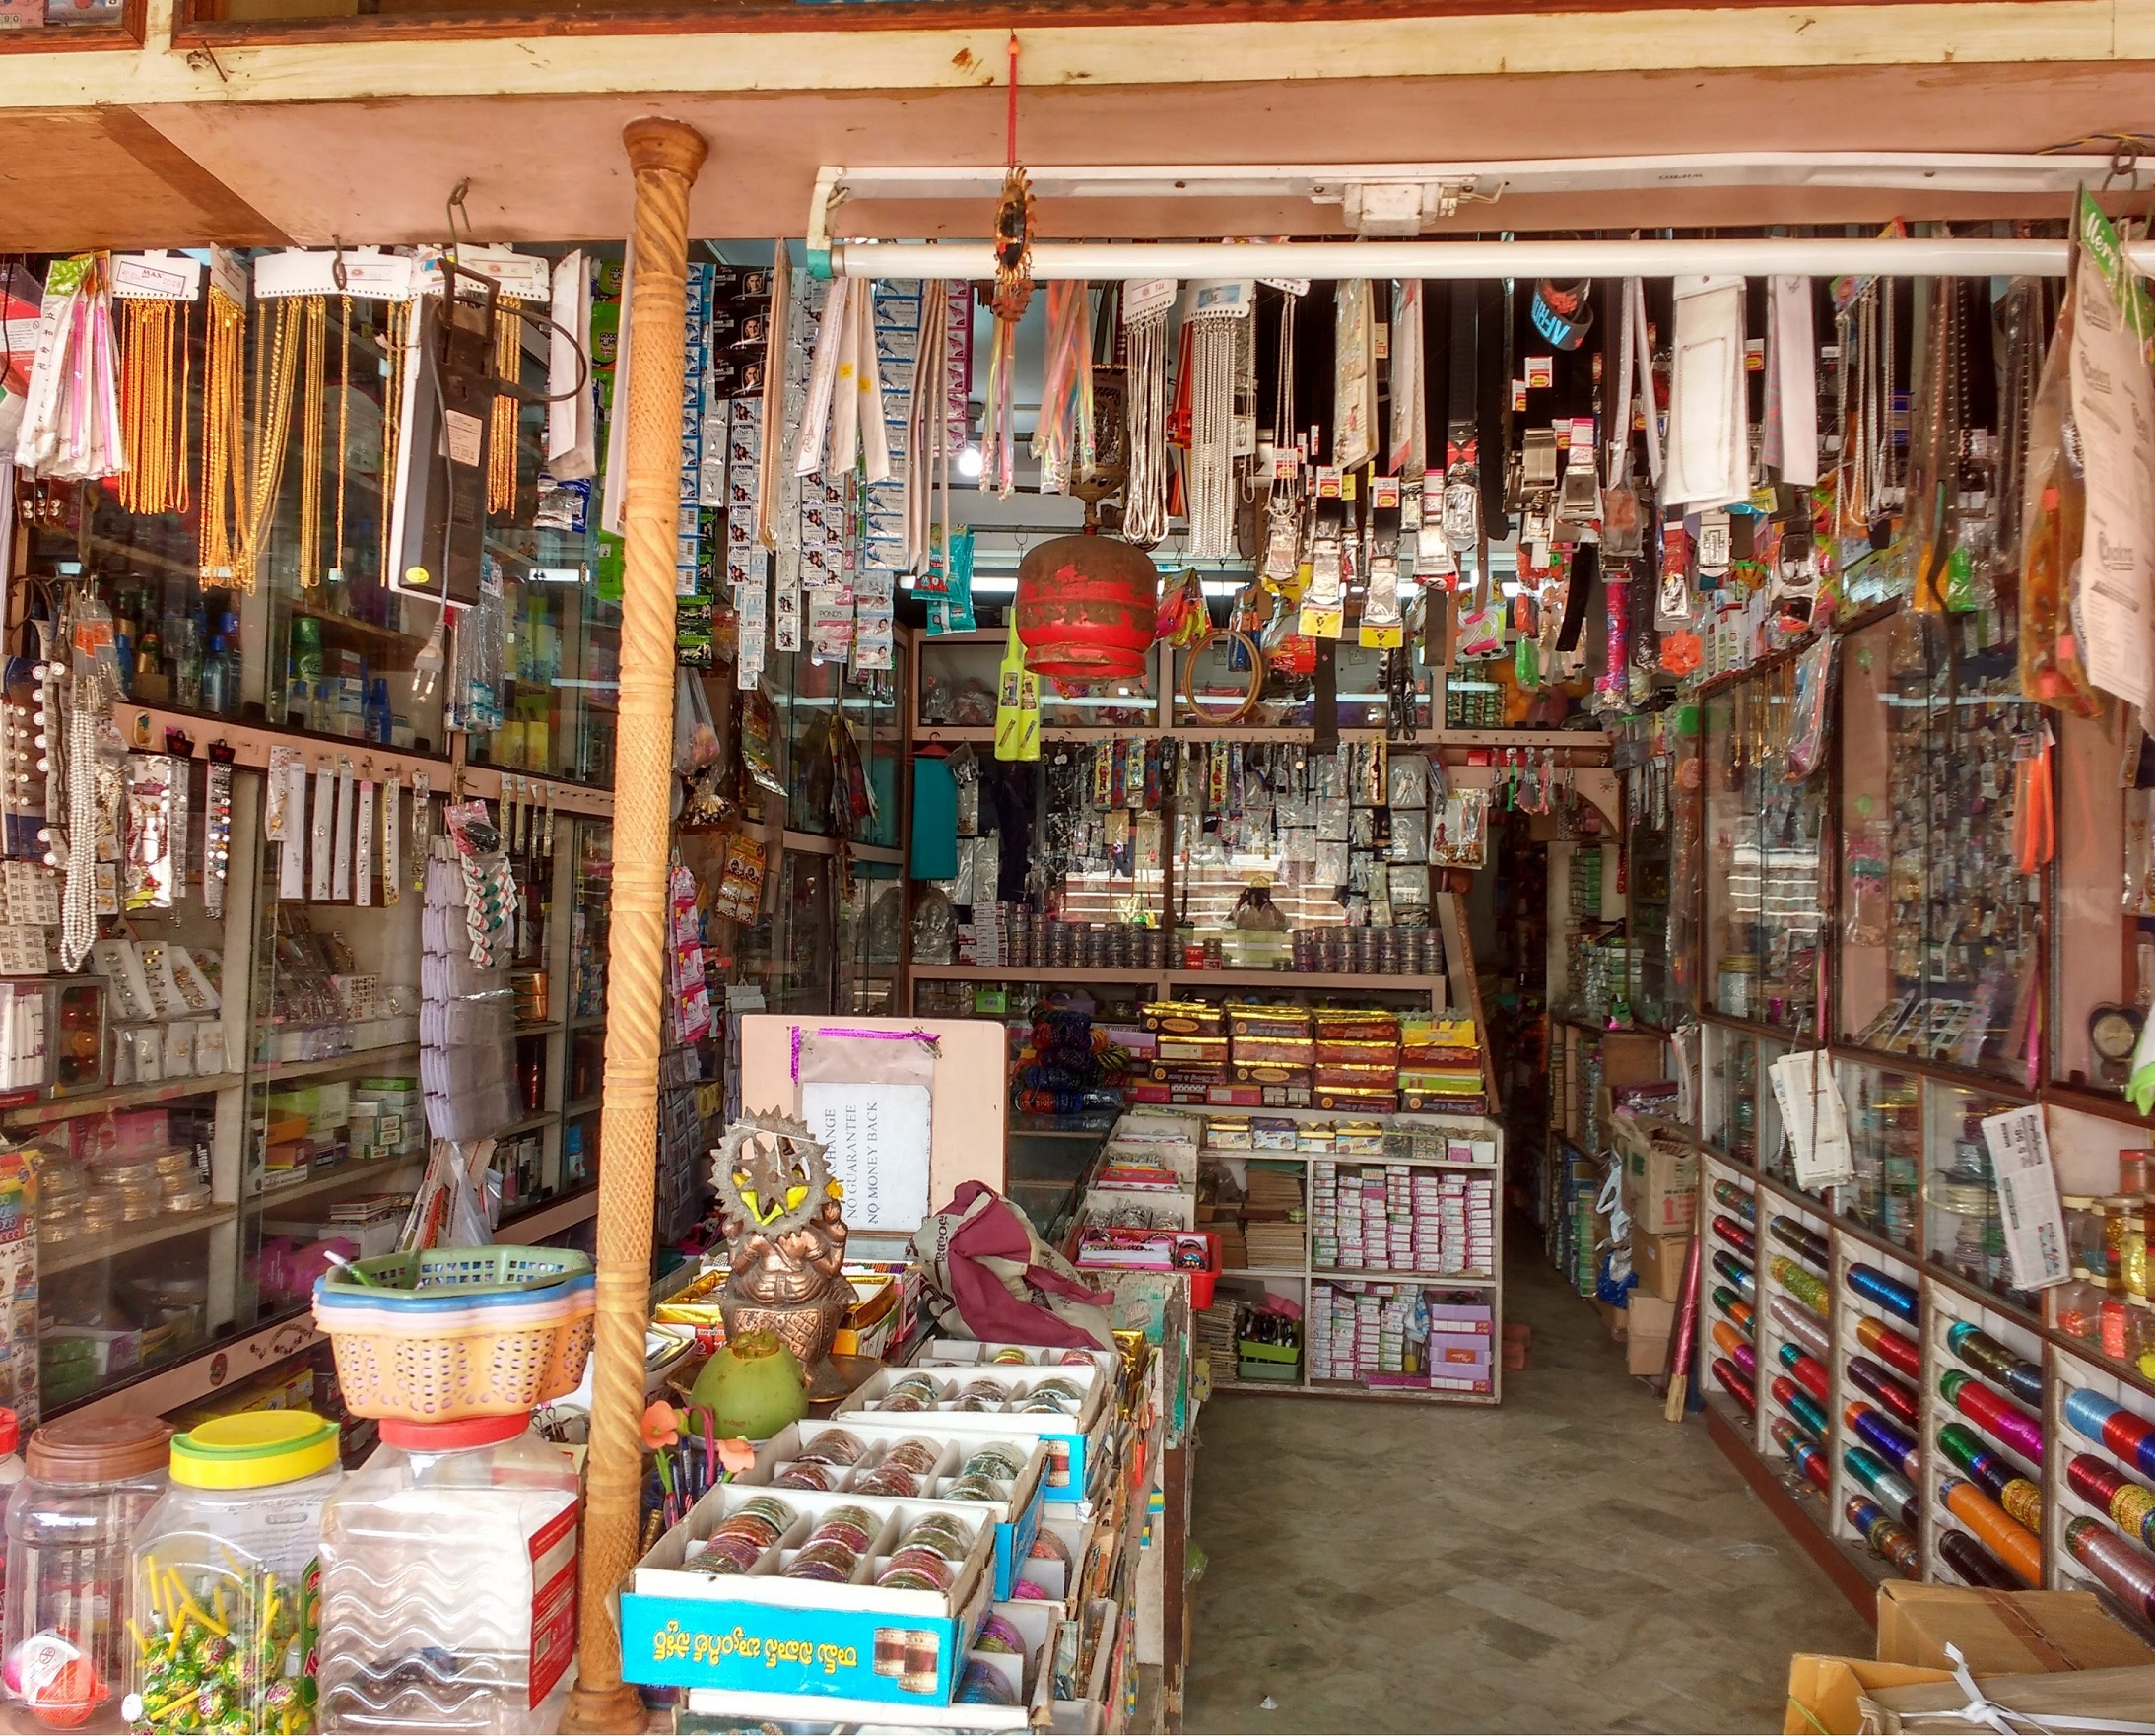 Fancy,Gifts,Seasonal come general items business Store is for sale in Pendurthi. The business was started in 2007 and it is doing good